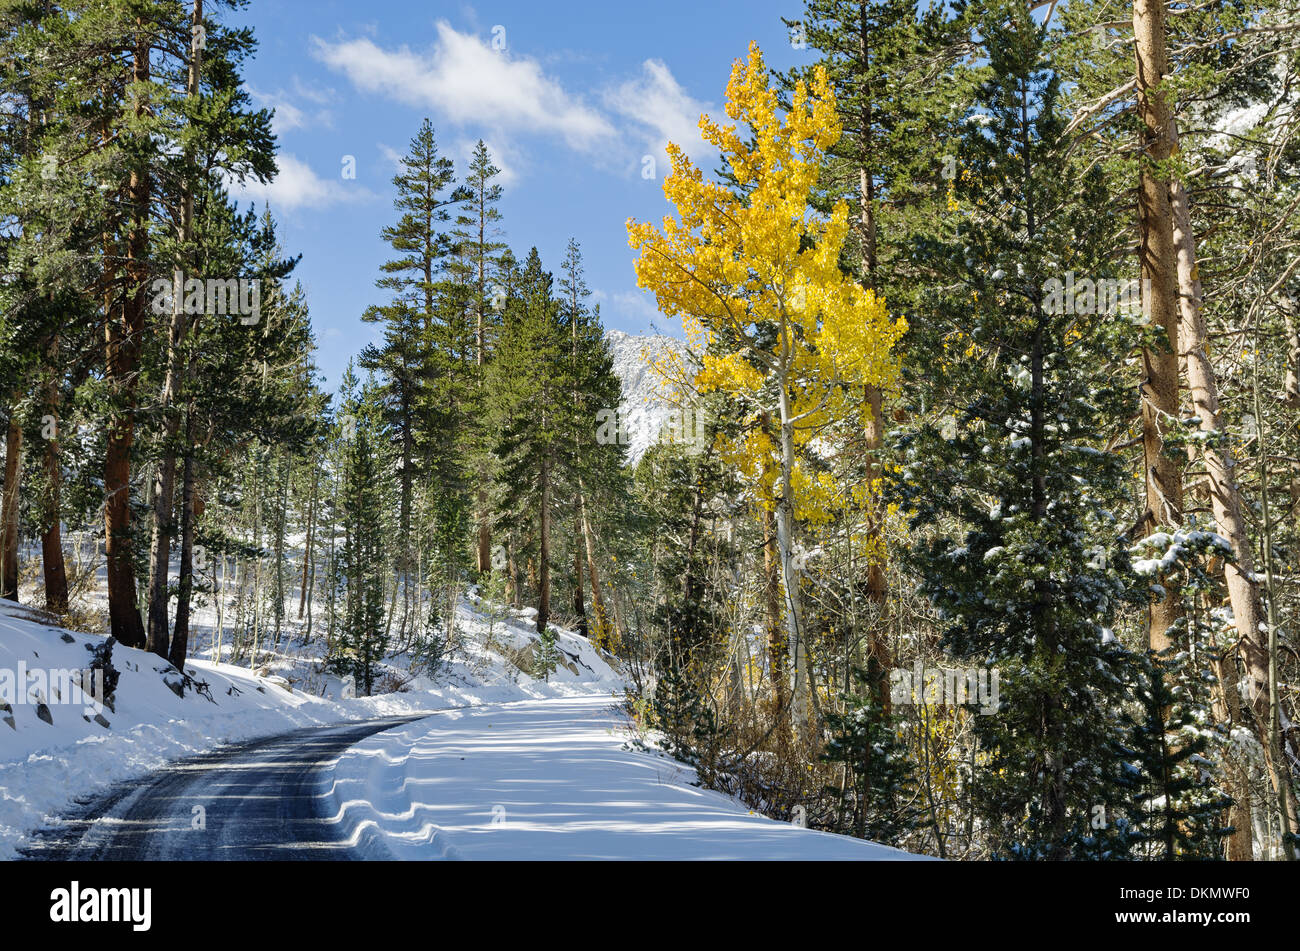 one golden aspen tree along a snowy road with pine trees in the fall - Stock Image